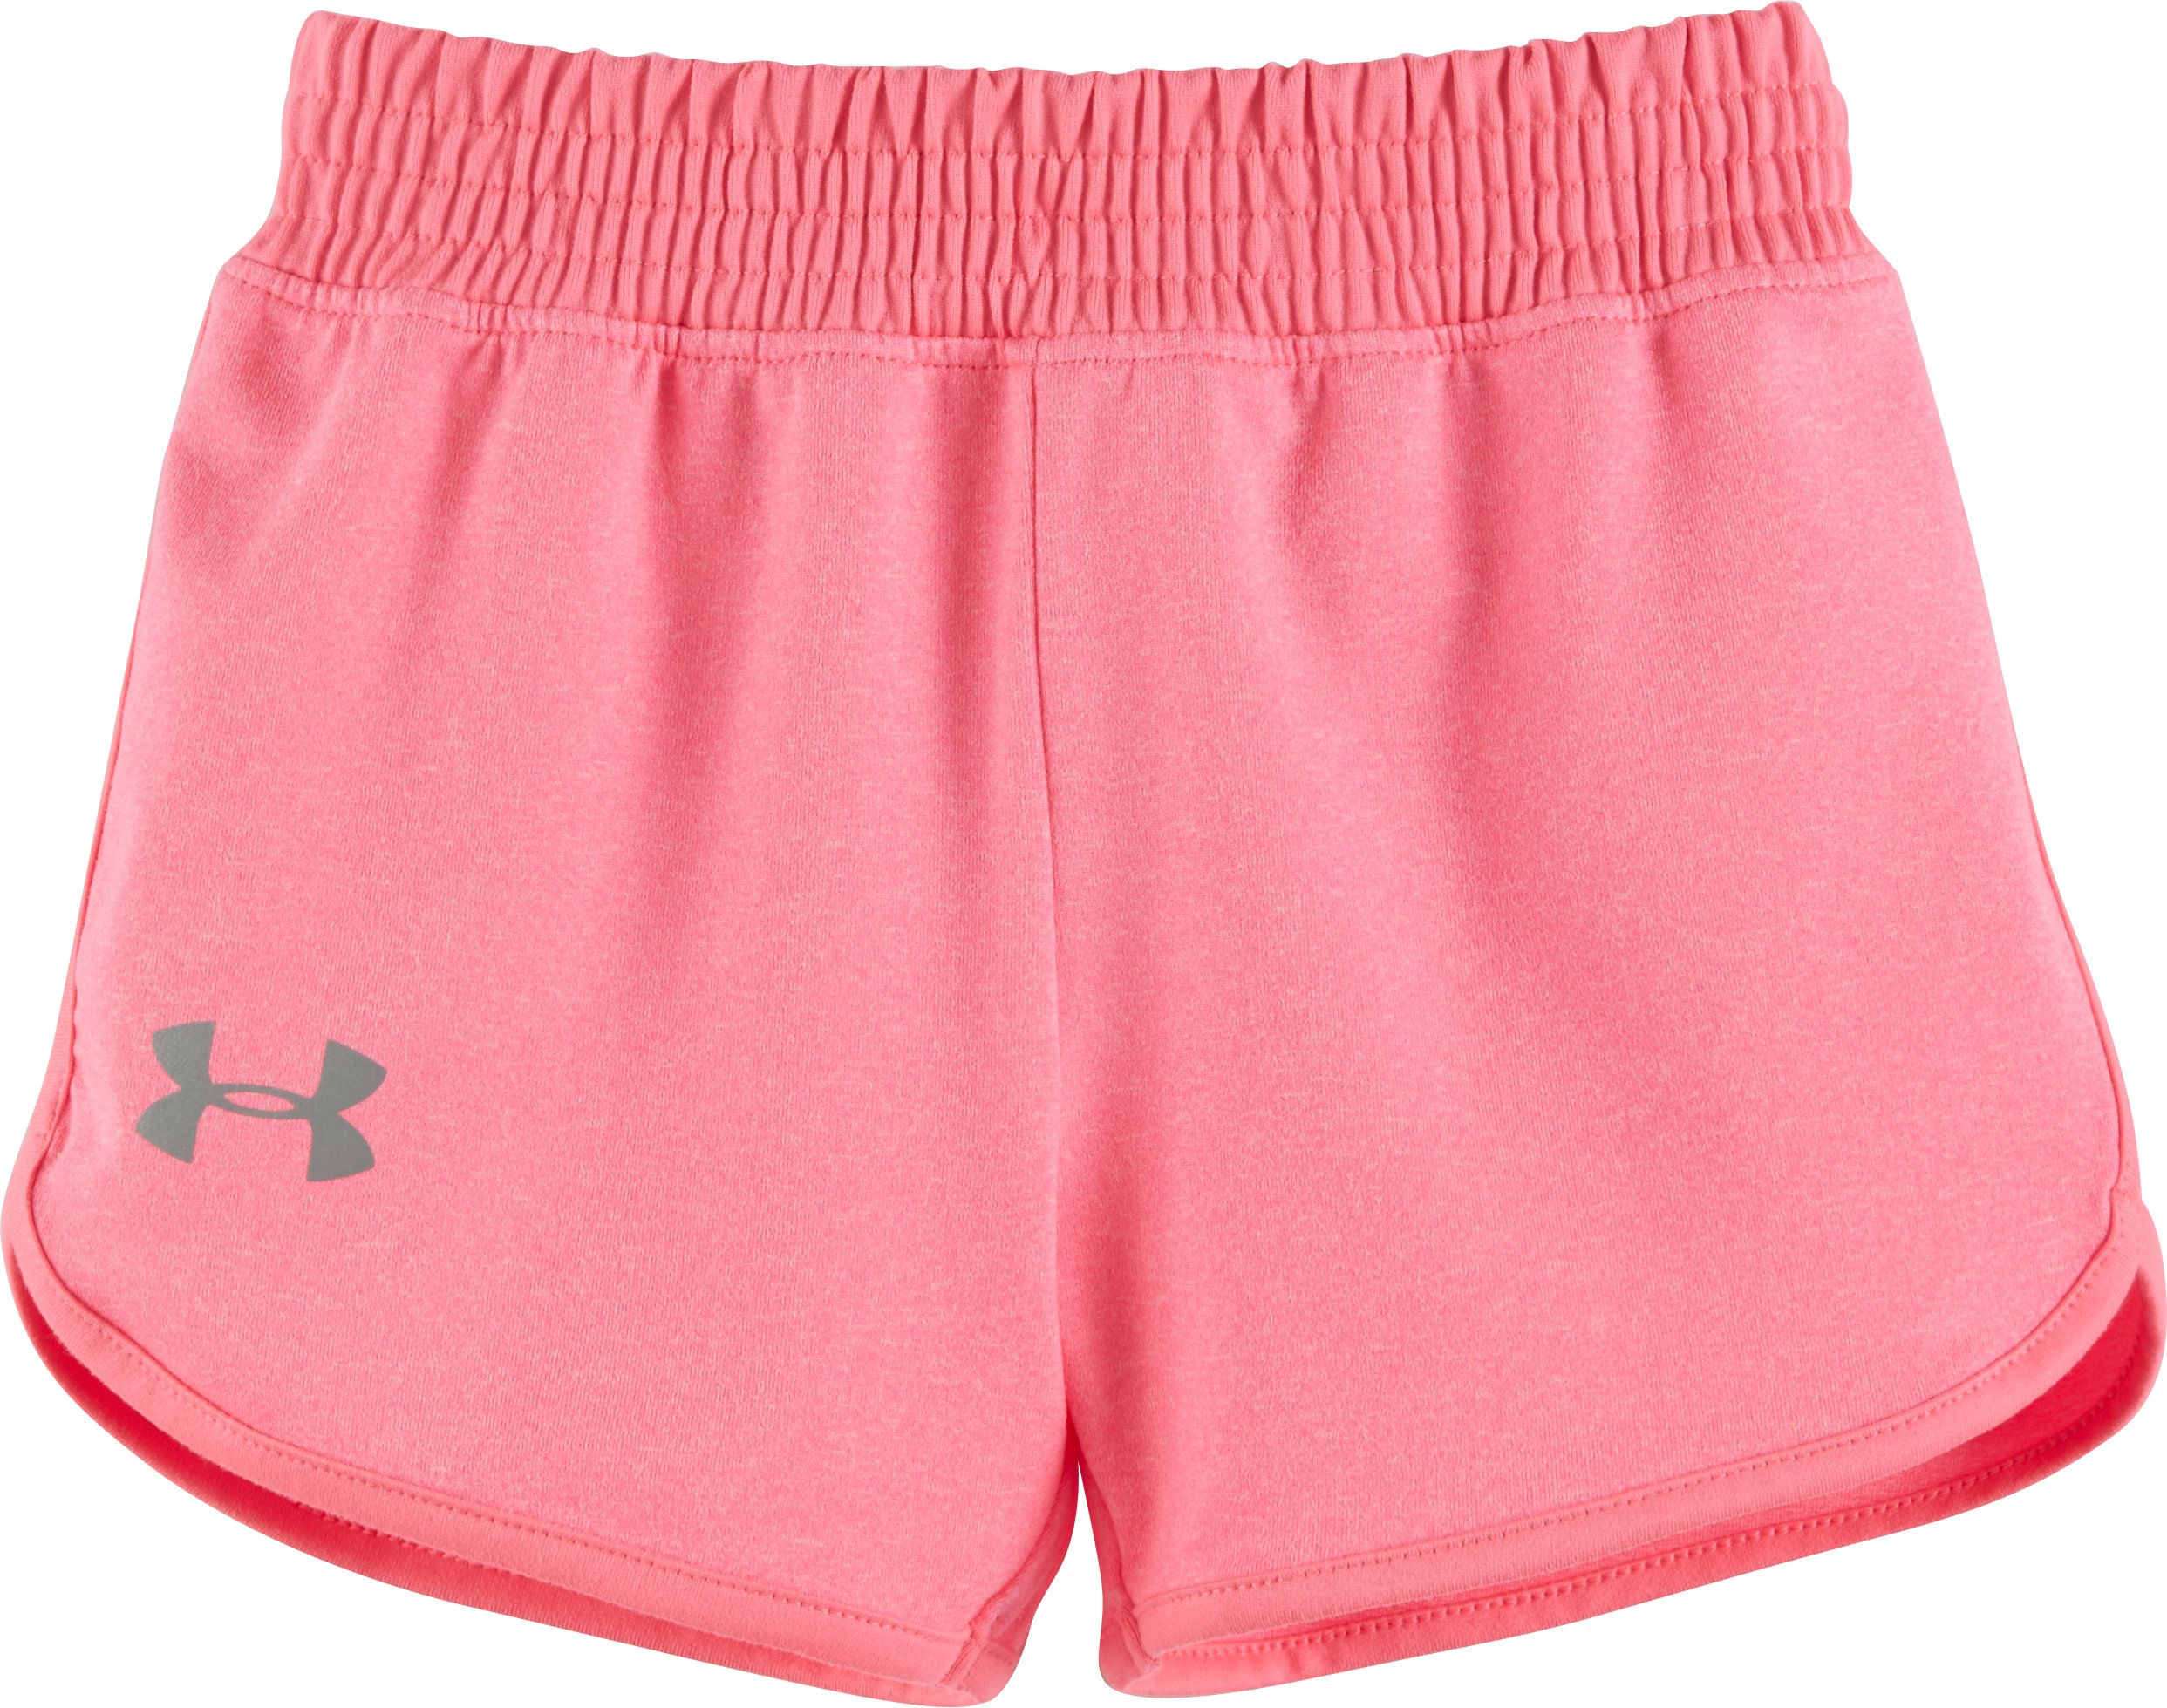 Girls' Toddler UA Record Breaker Shorts, PINK PUNK, Laydown